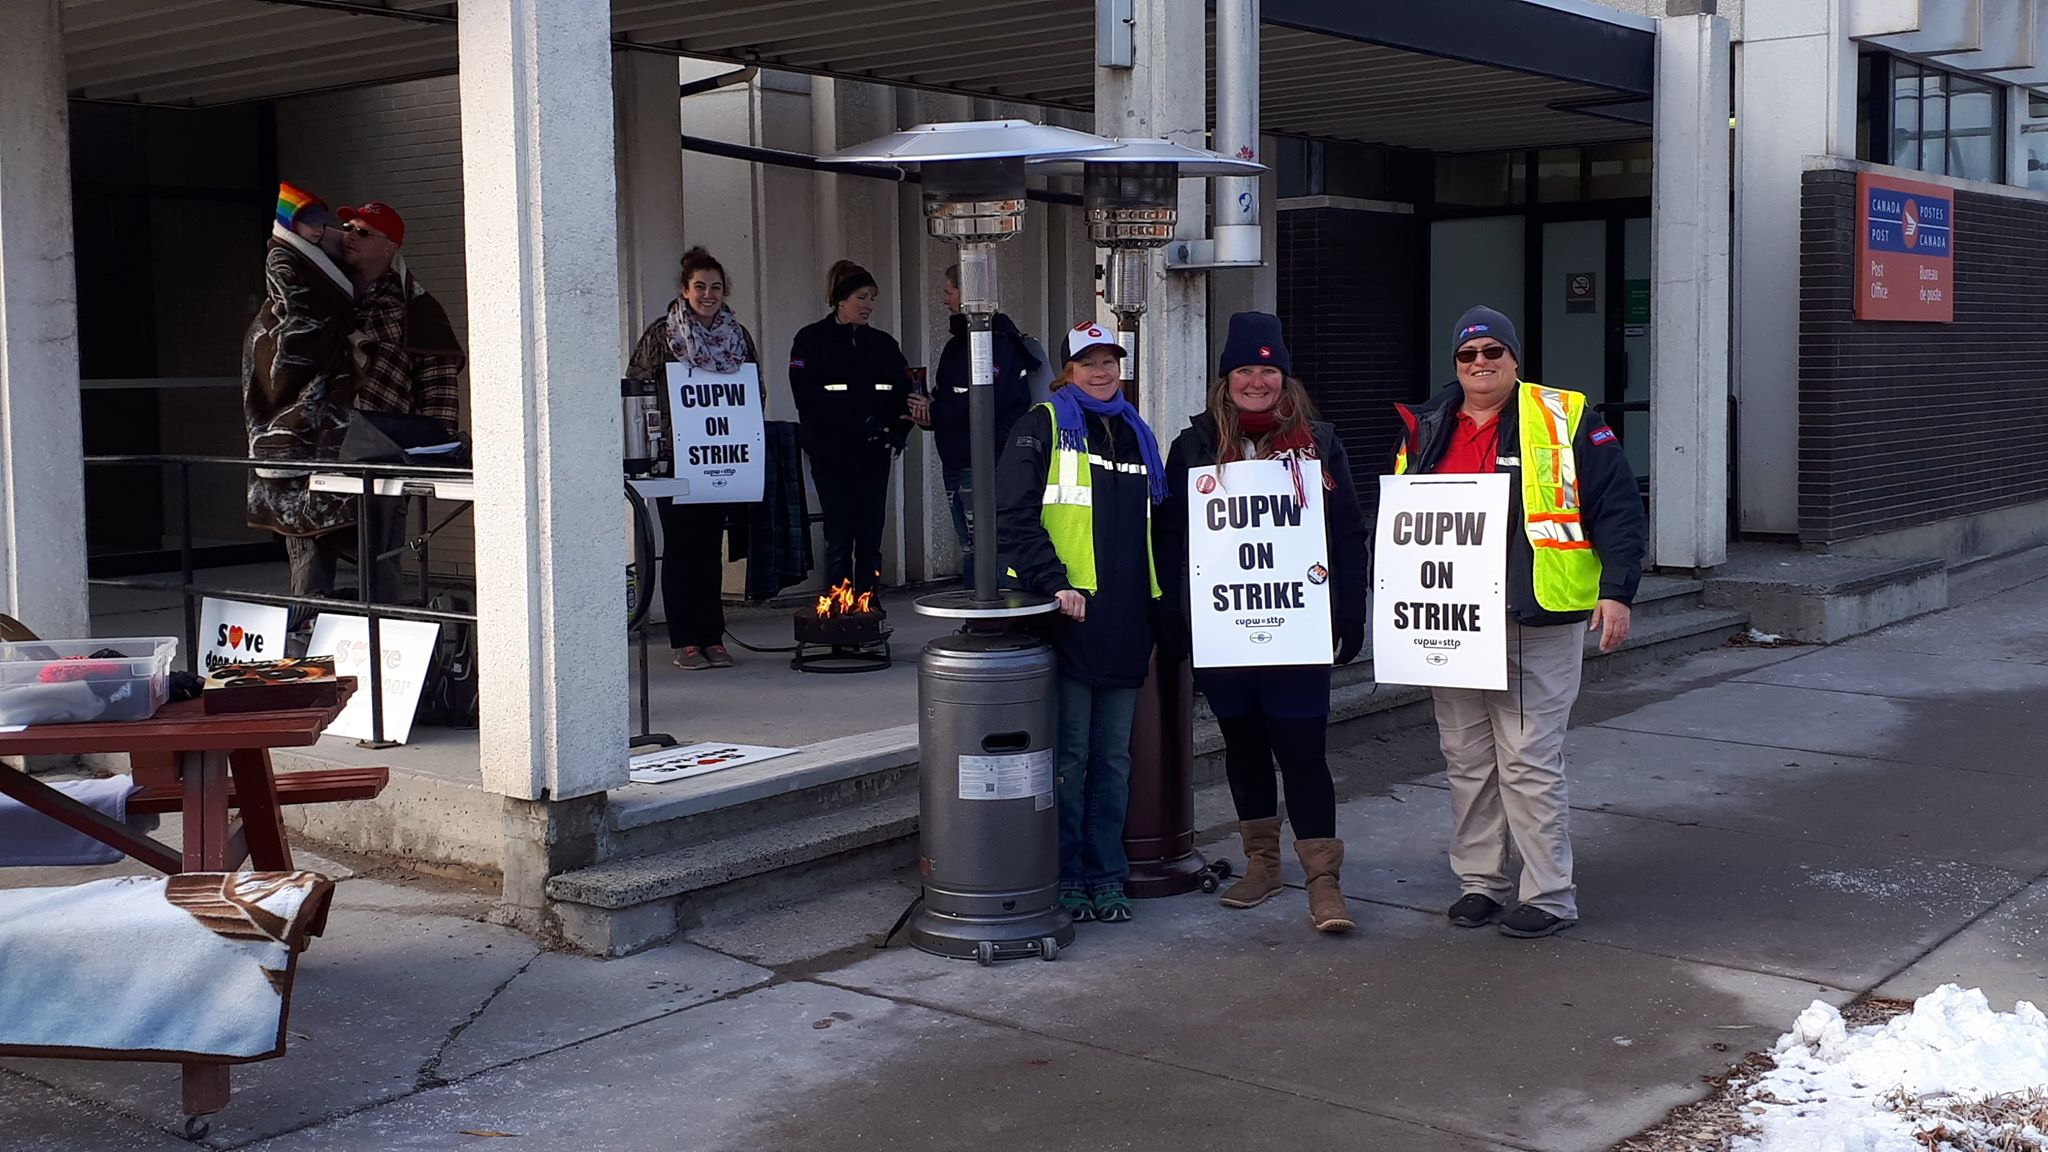 Rotating strikes come to Cranbrook, postal workers on picket lines